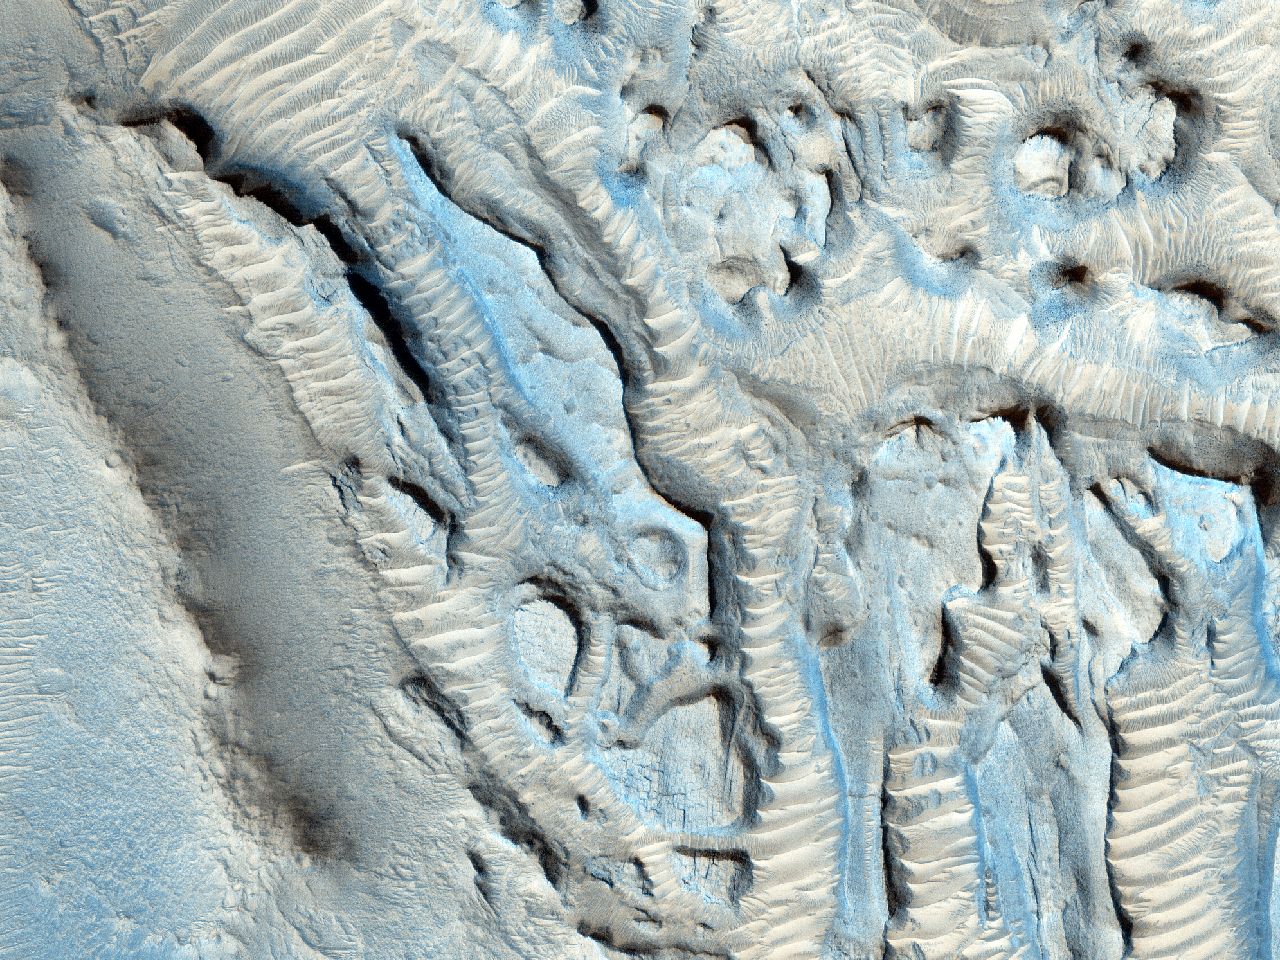 Small Channels and a Rocky Patch in the Cydonia Region